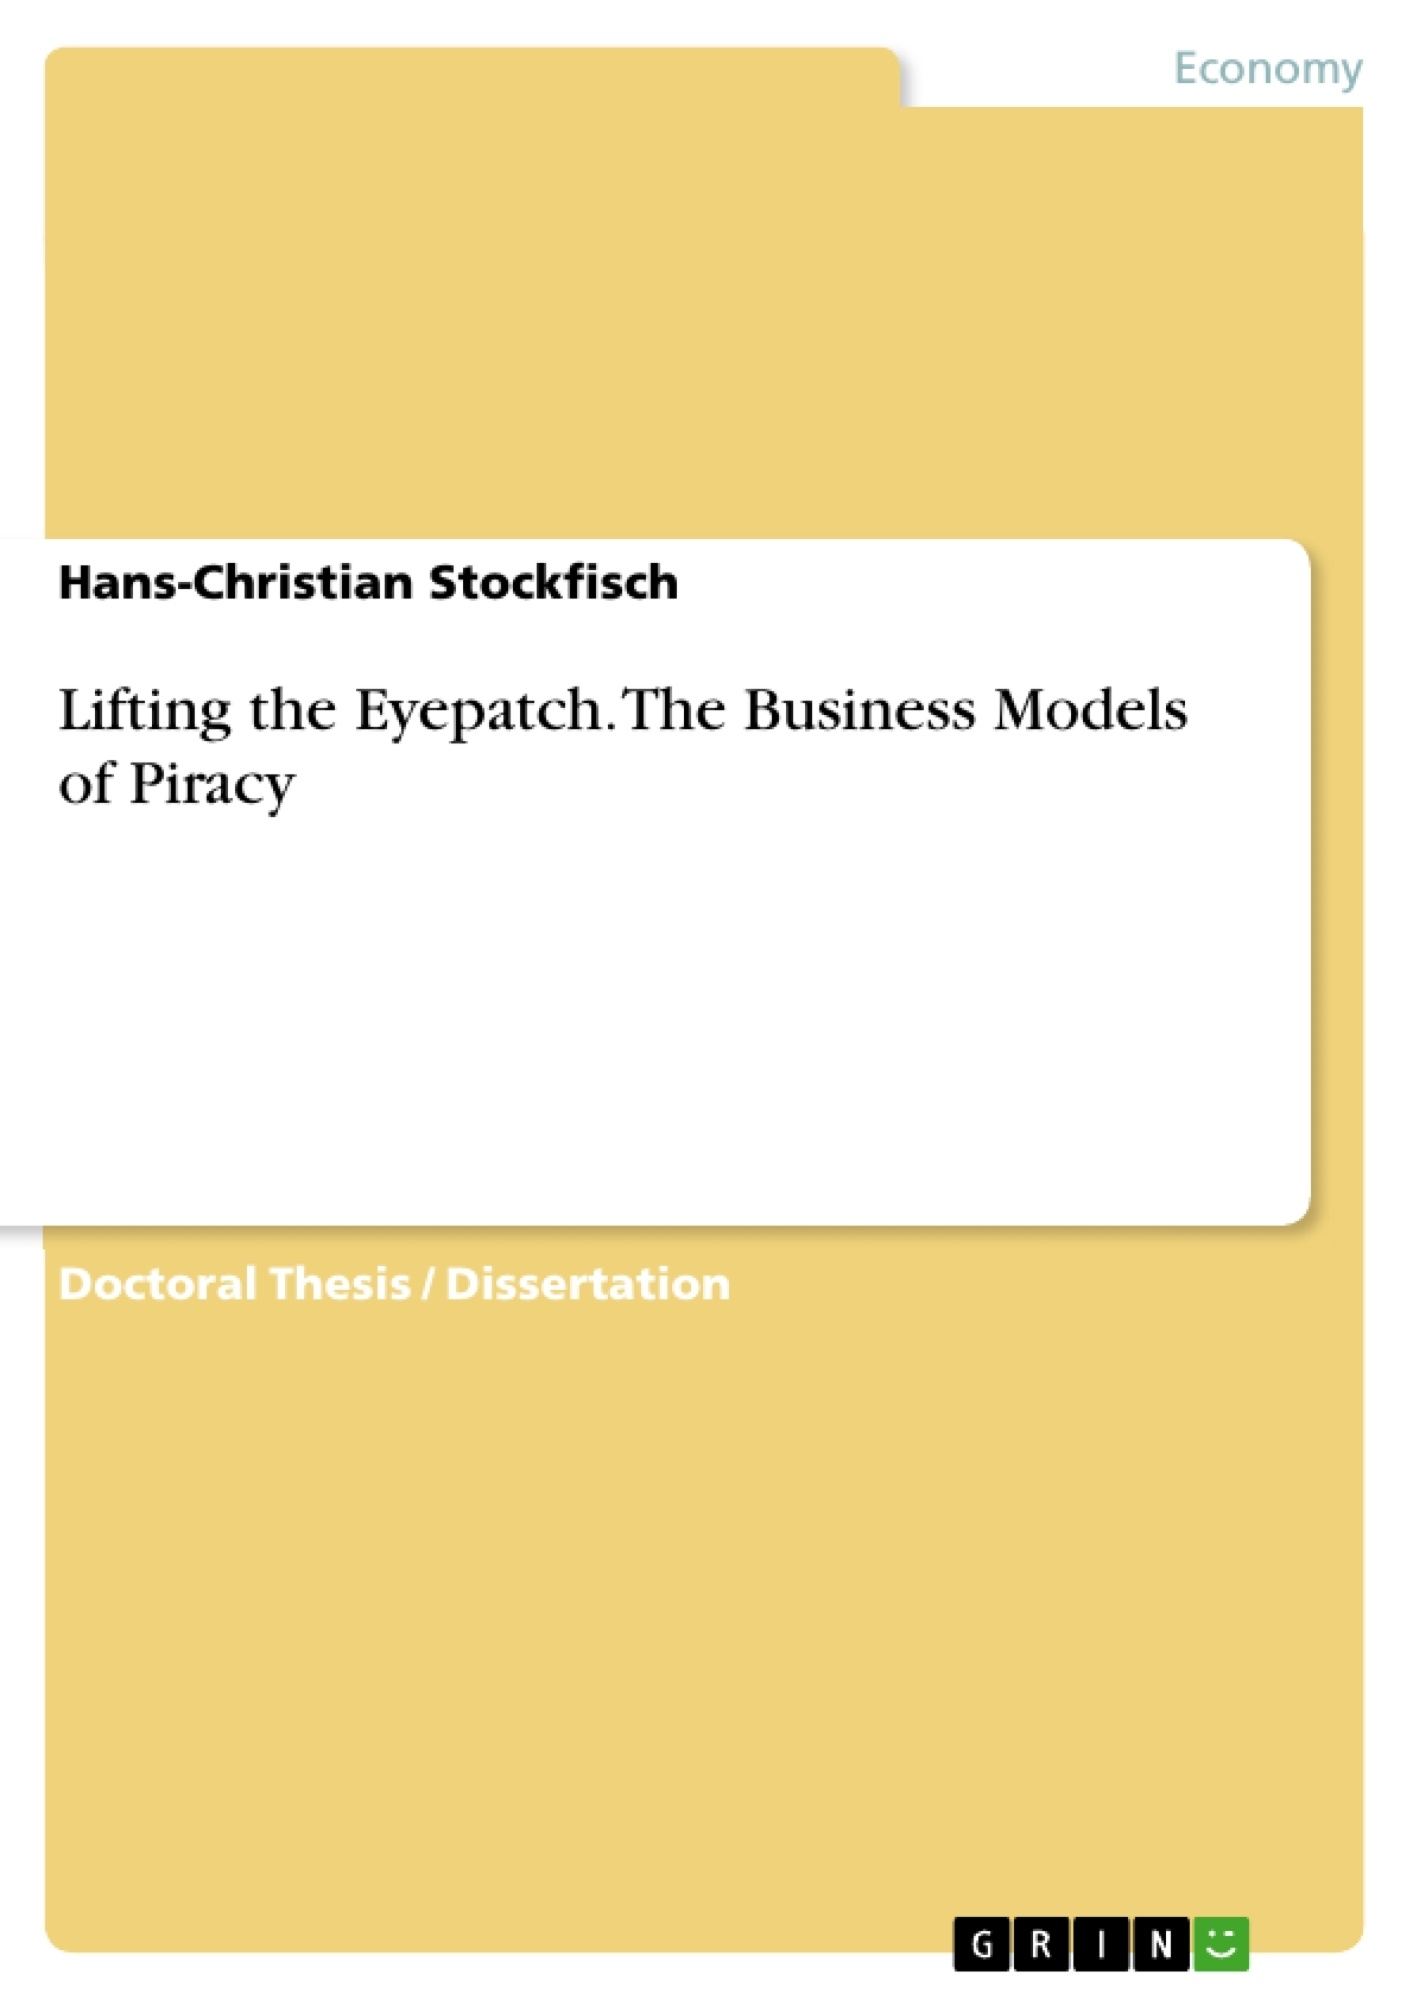 Title: Lifting the Eyepatch. The Business Models of Piracy